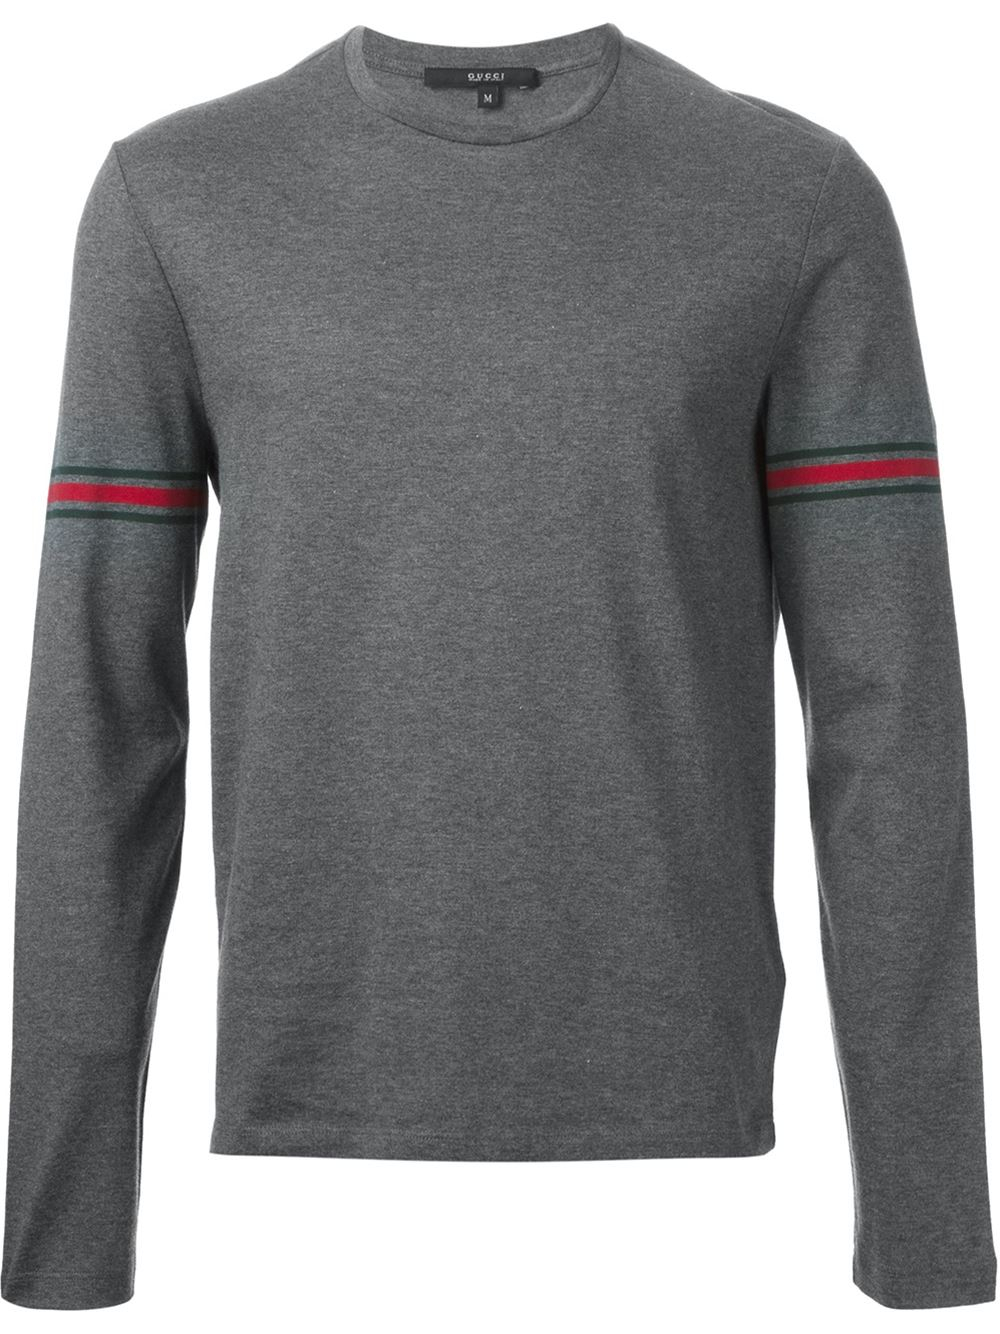 Gucci long sleeve t shirt in gray for men lyst for Grey long sleeve shirts